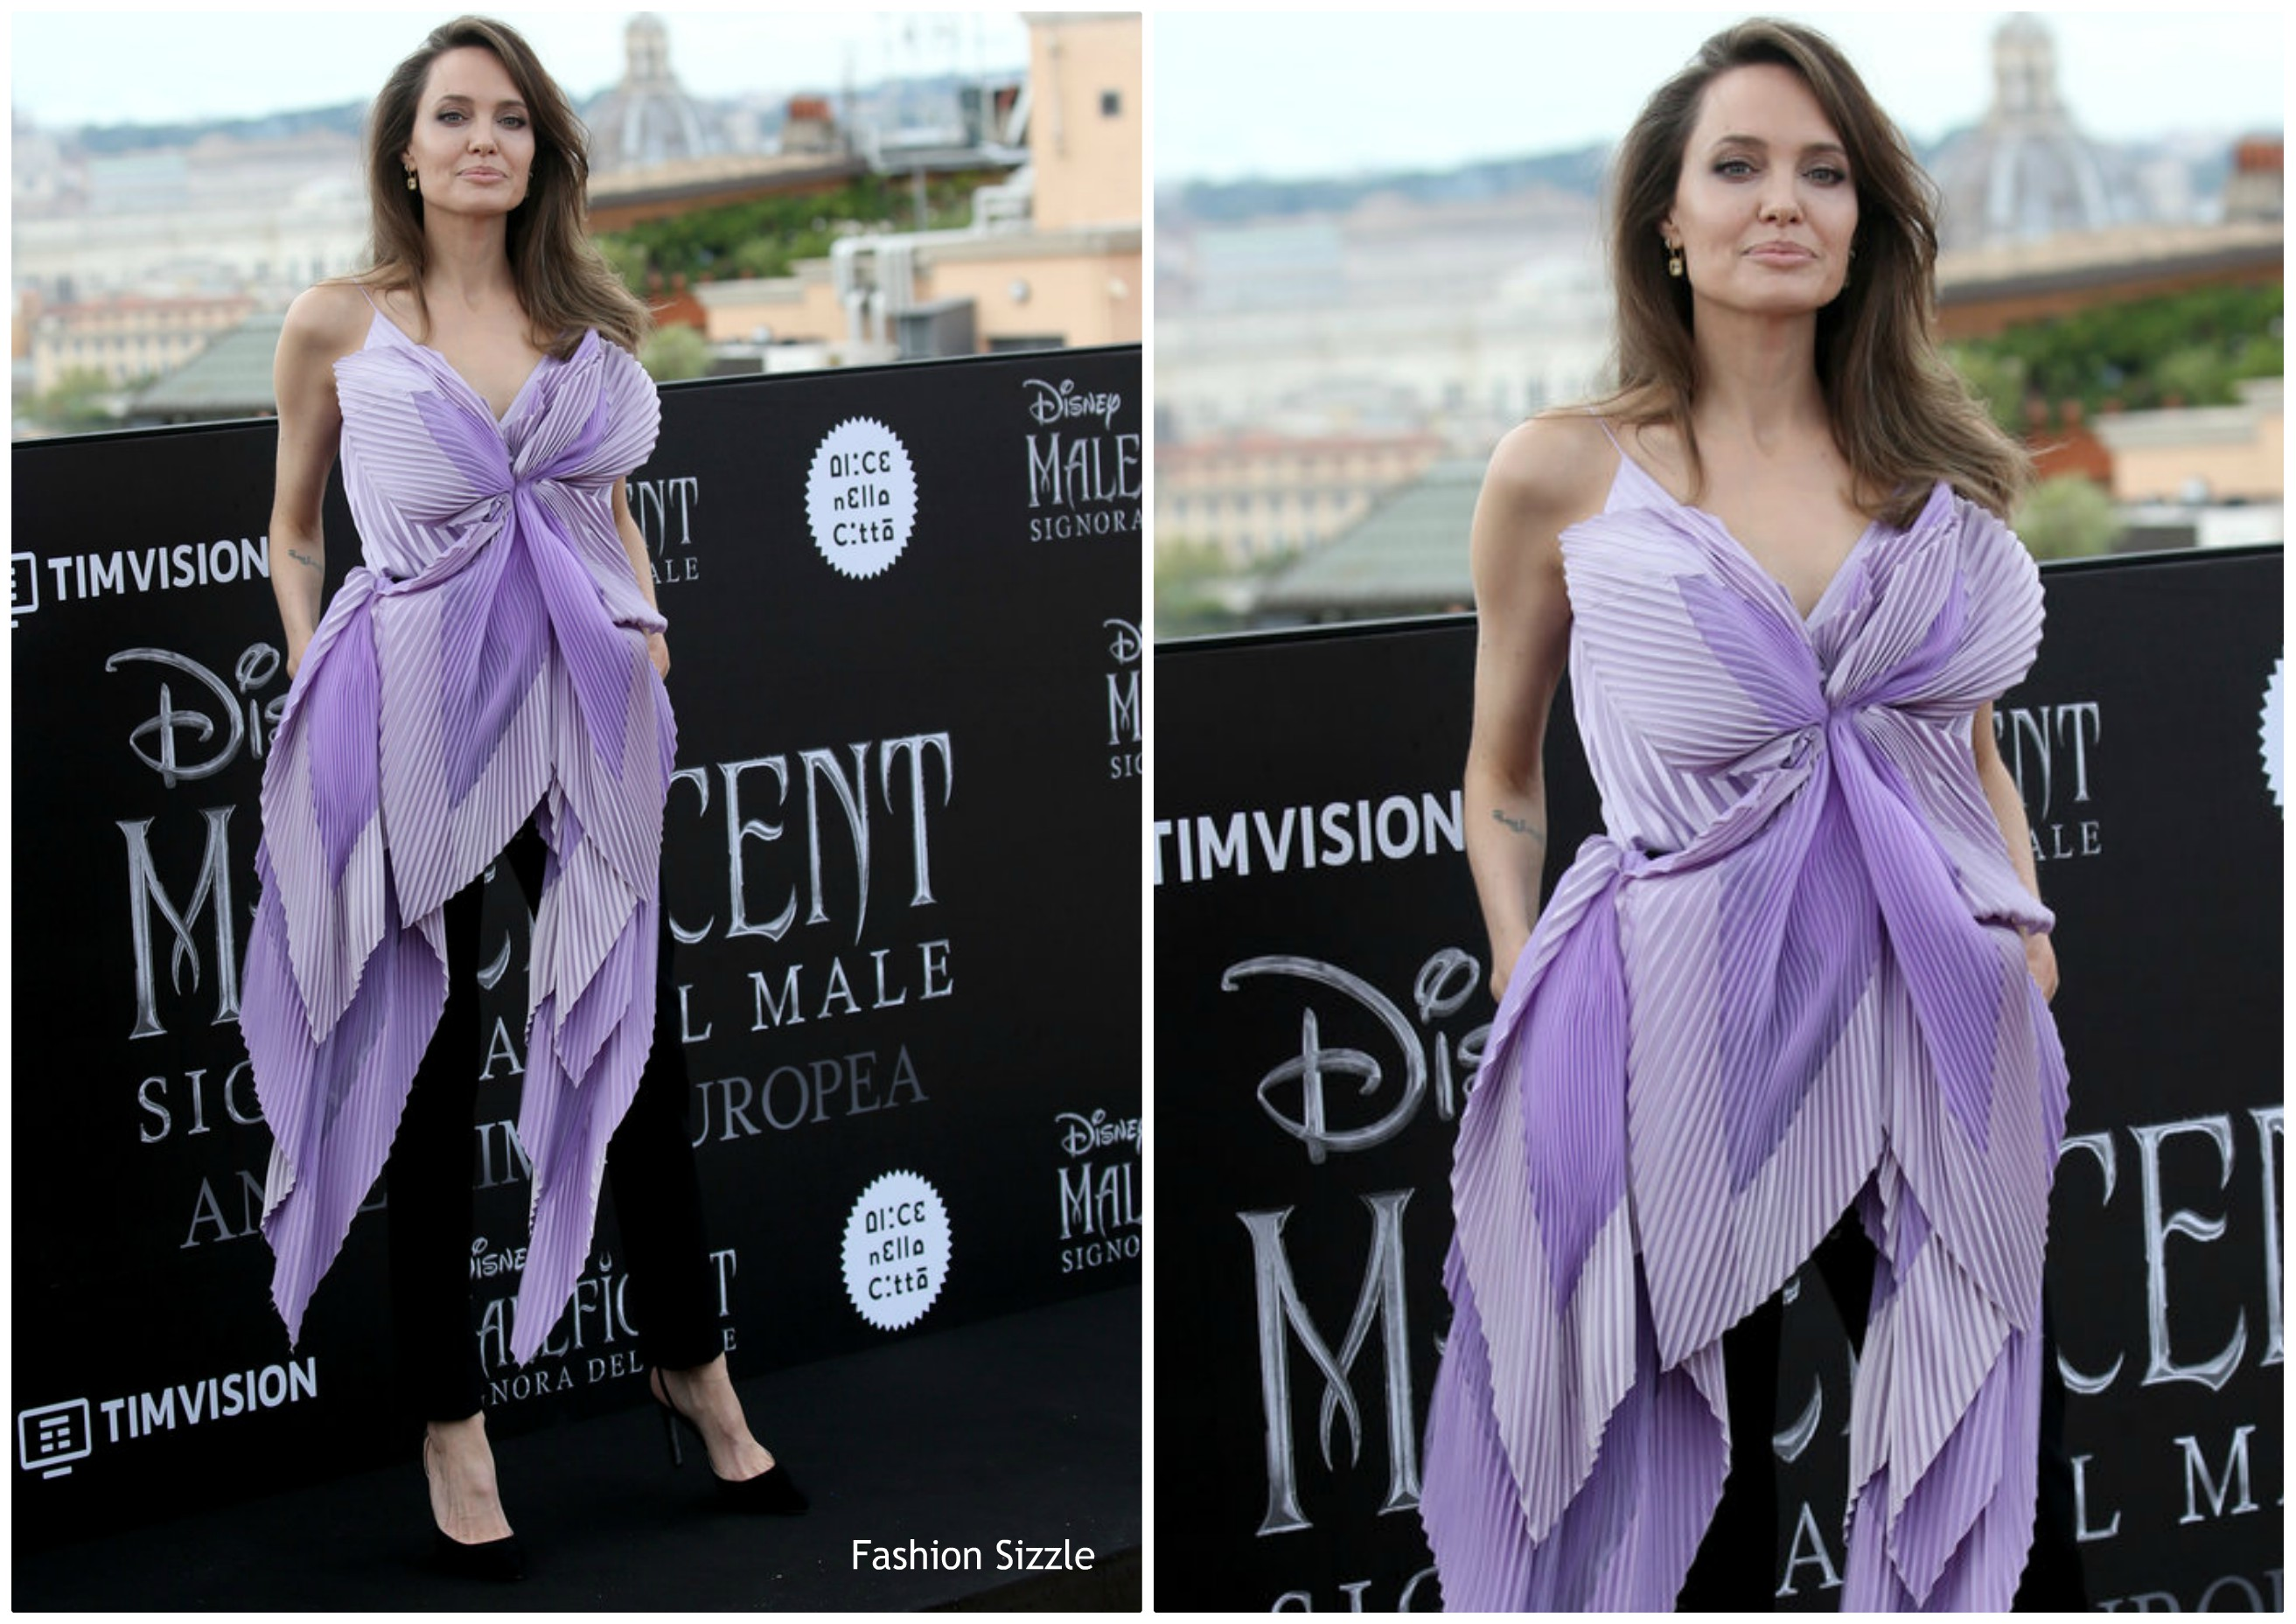 angelina-jolie-in-givenchy-haute-couture-the-maleficent-mistress-of-evil-rome-photocall